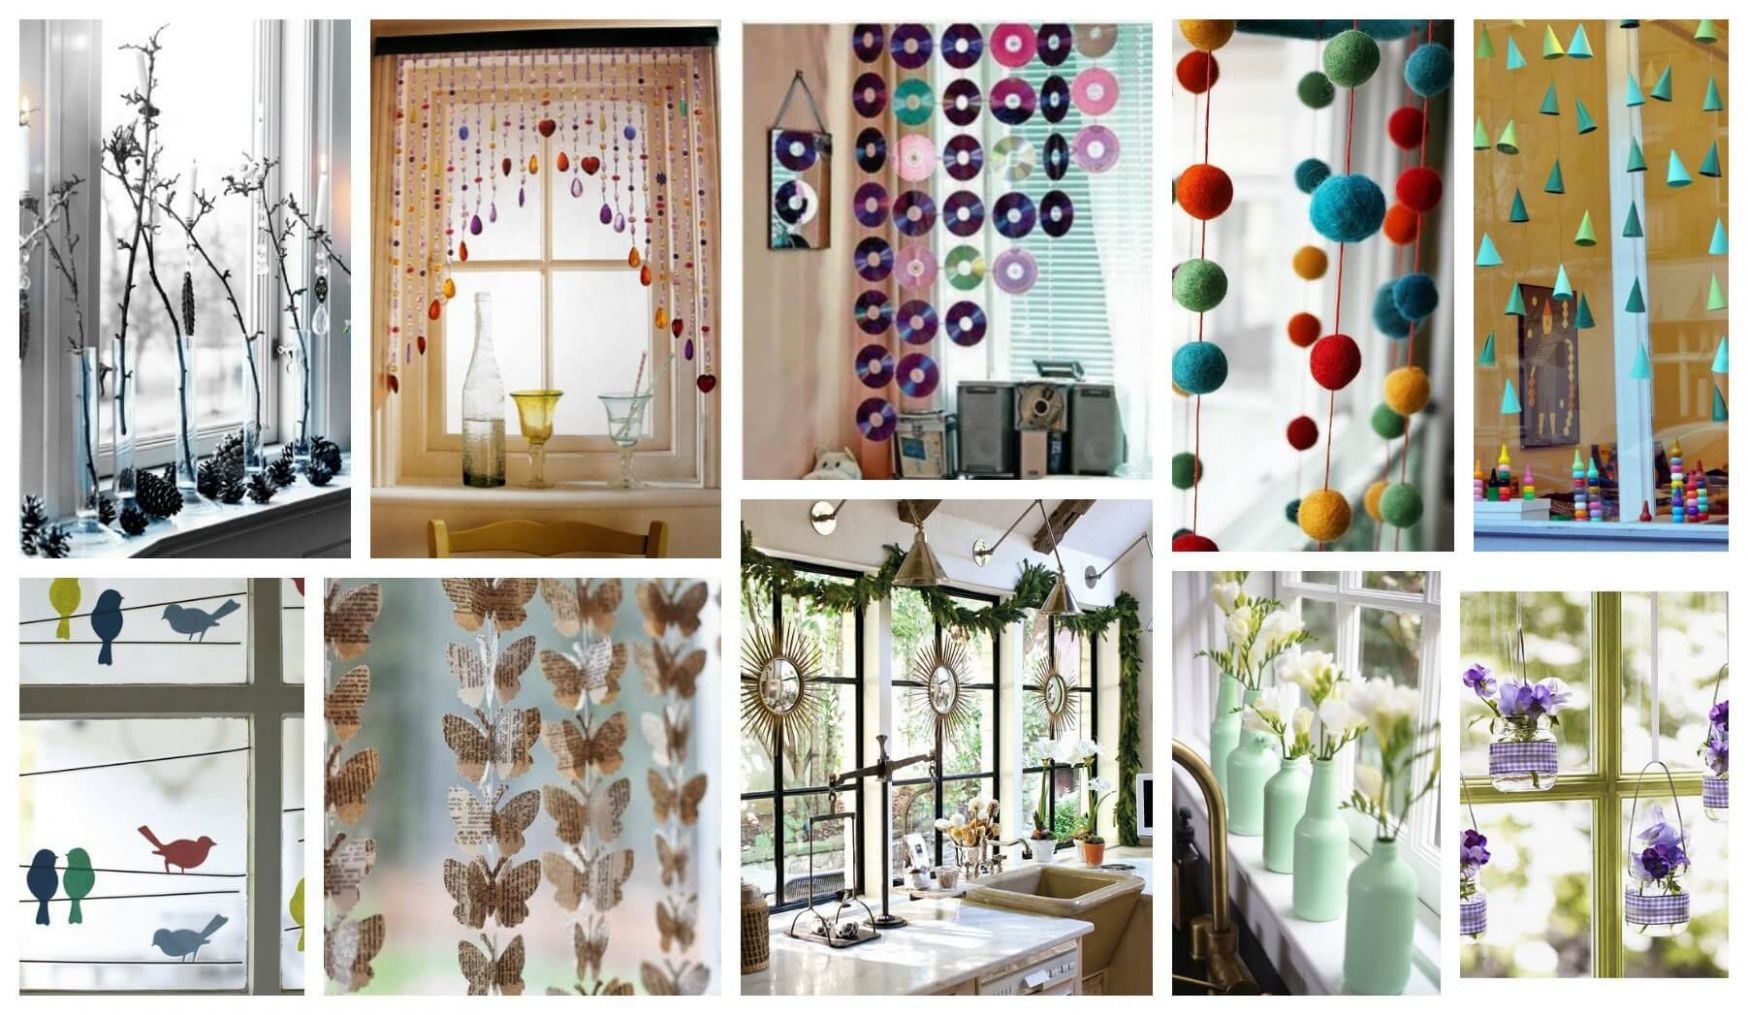 DIY Window Decorating Ideas For Better Homes - The Architecture ..